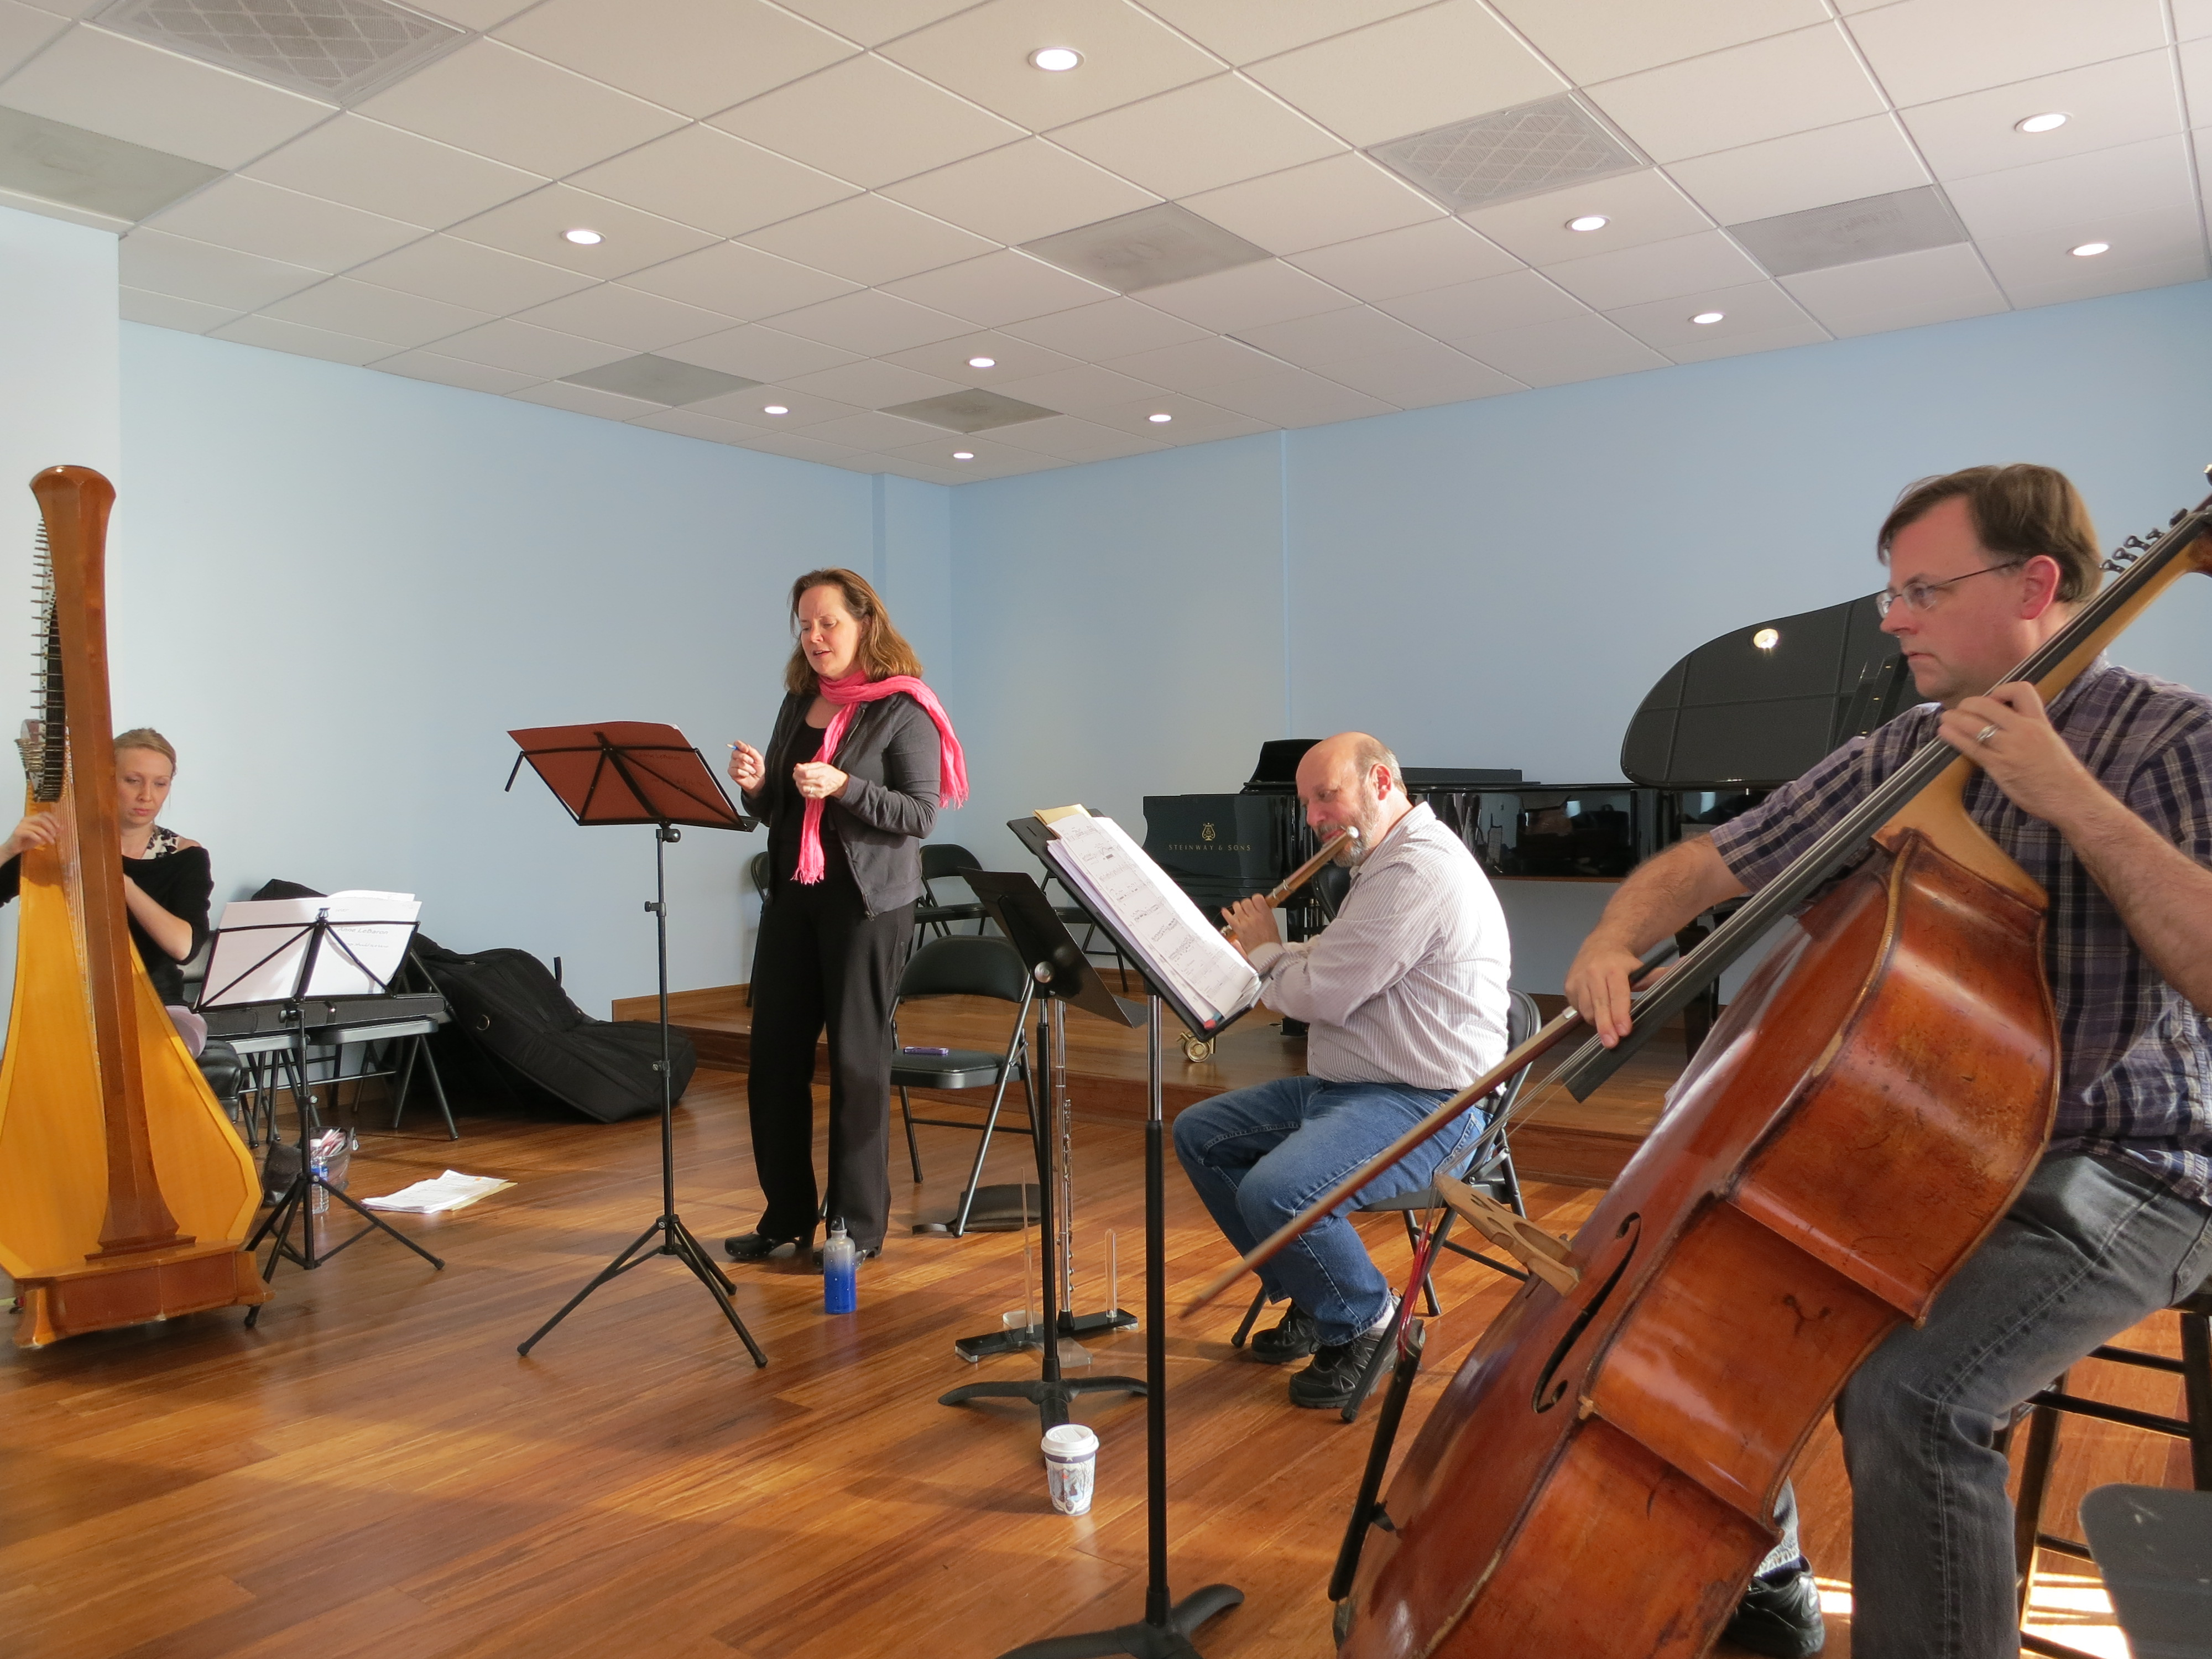 Alison Bjorkedal (harp), Elissa Johnston (soprano), Larry Kaplan (flute) and Tom Peters (bass) rehearse for Some Things Should Not Move.